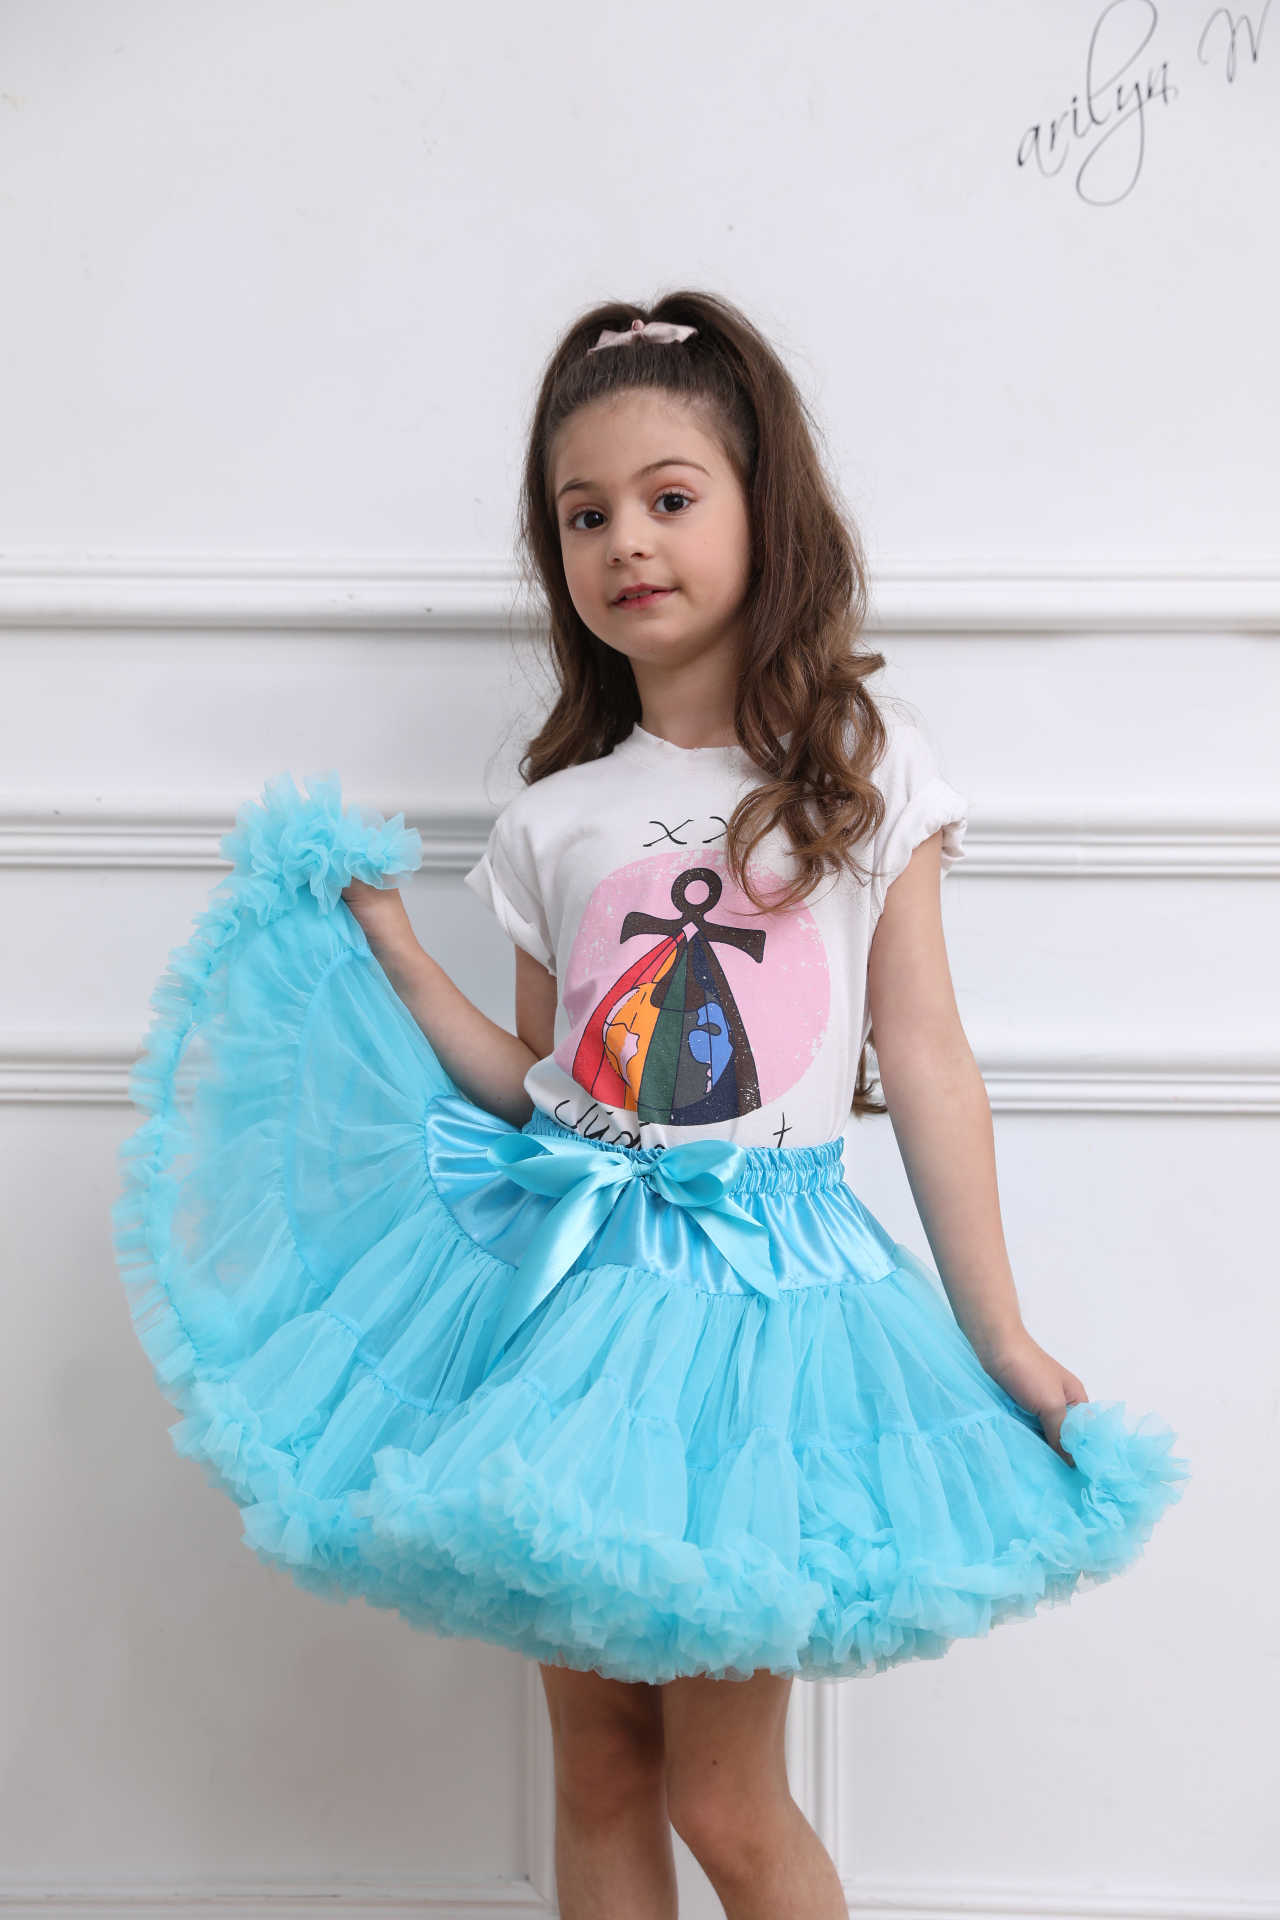 Peach Teal Grey FULL Pettiskirt Skirt Party Dress Dance Tutu Child Girl 1-8Y